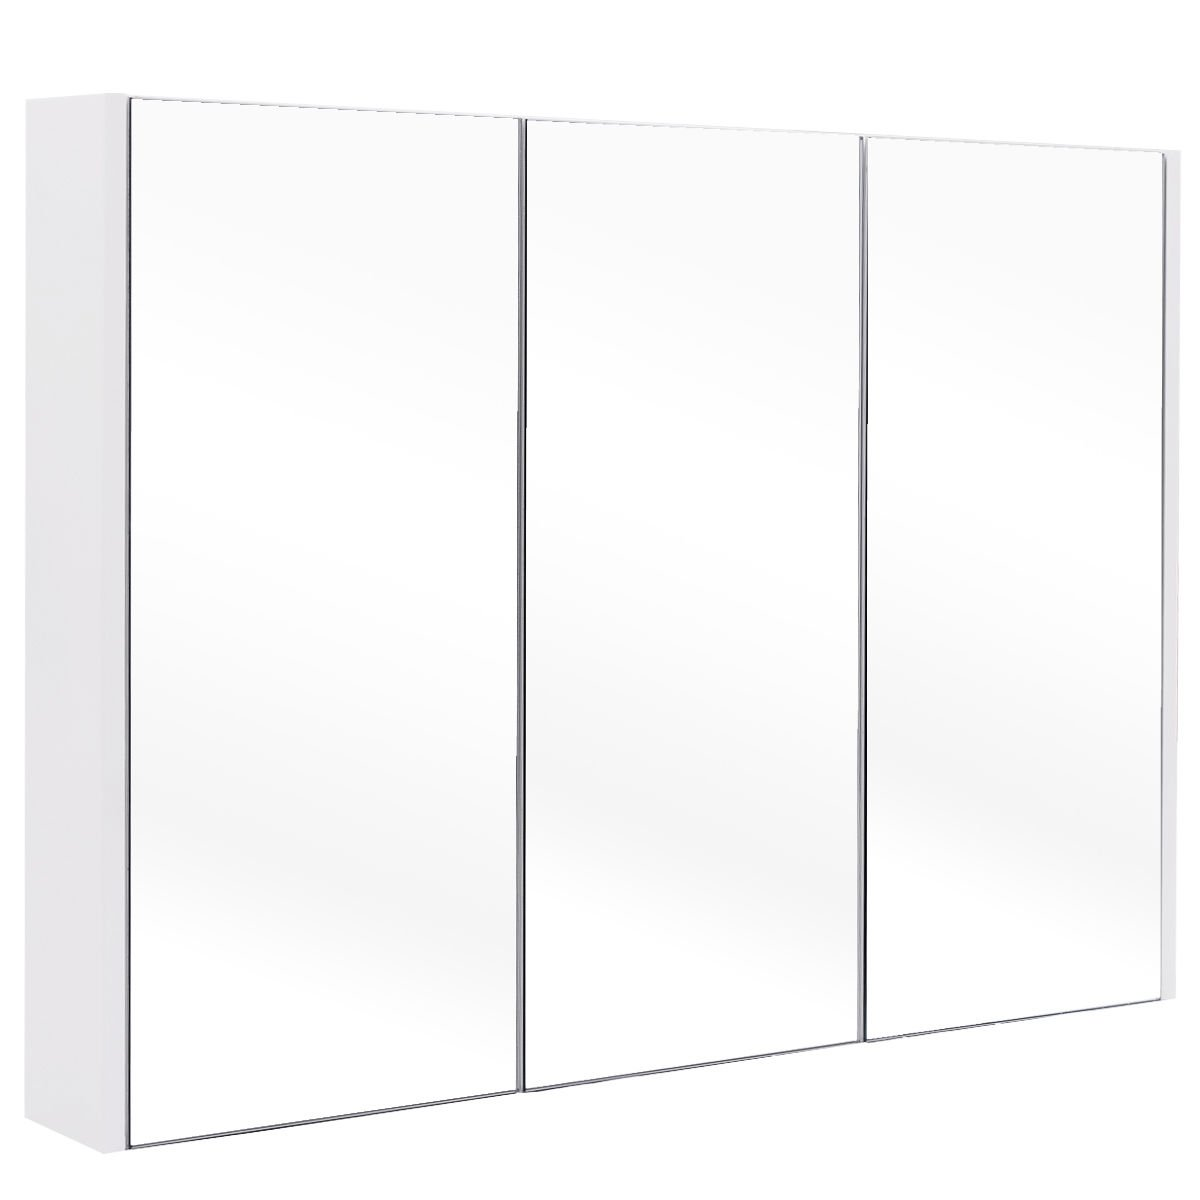 White Wall Mounted Bathroom Cabinet w/ 3 Mirror Doors